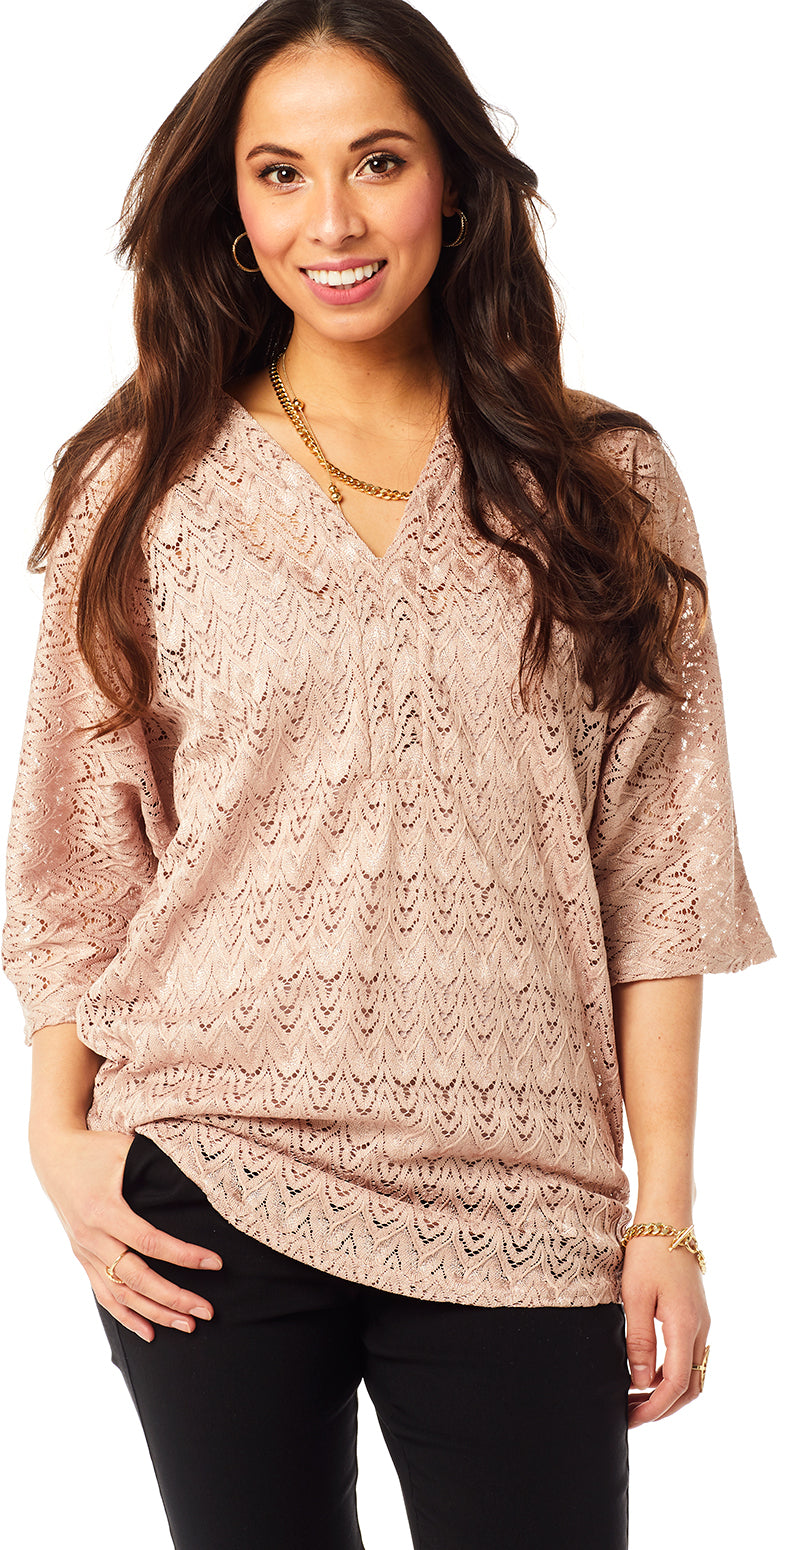 Rosa blonde bluse